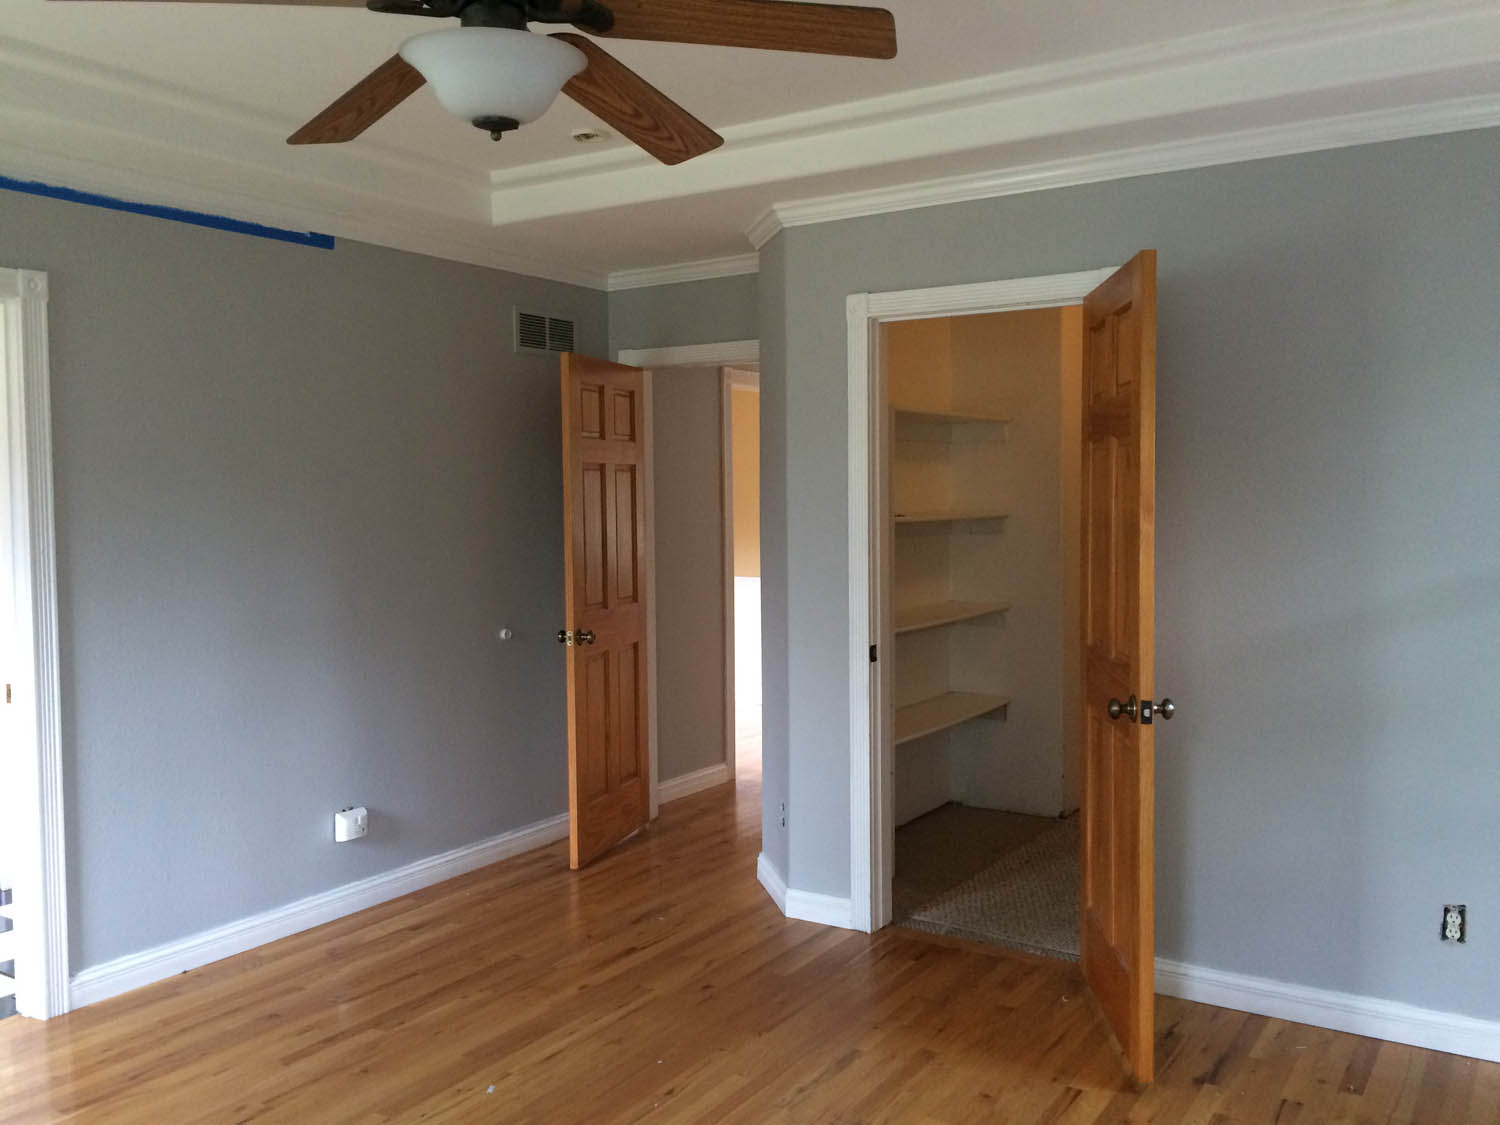 Master bedroom walls during painting and before doors painted.